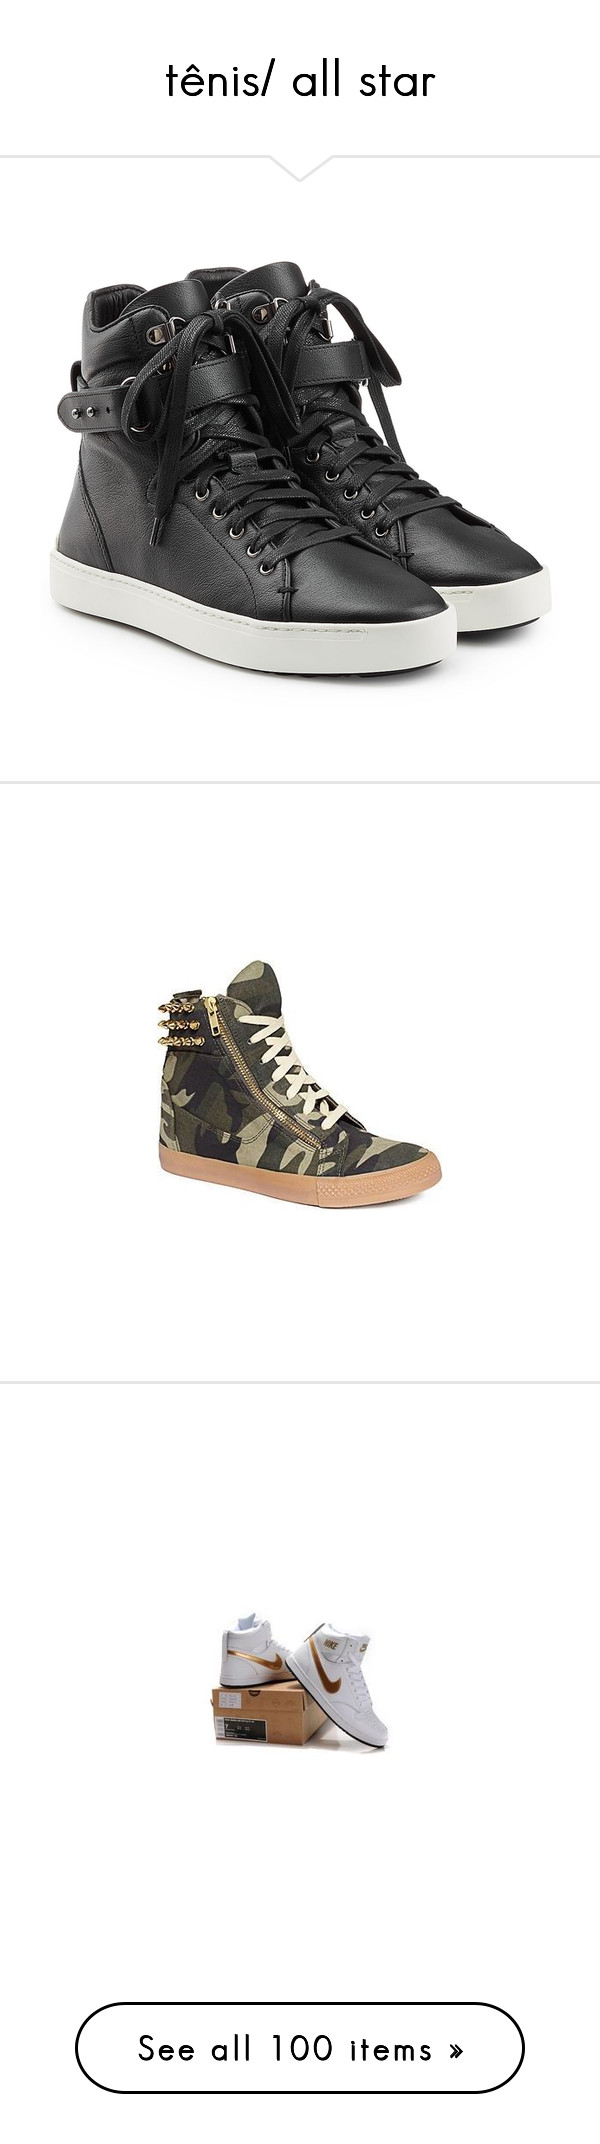 """""""tênis/ all star"""" by sem-toledo on Polyvore featuring shoes, sneakers, giuseppe zanotti, black leather shoes, black shoes, real leather shoes, zipper shoes, black sneakers, leather sneakers and black leather sneakers"""